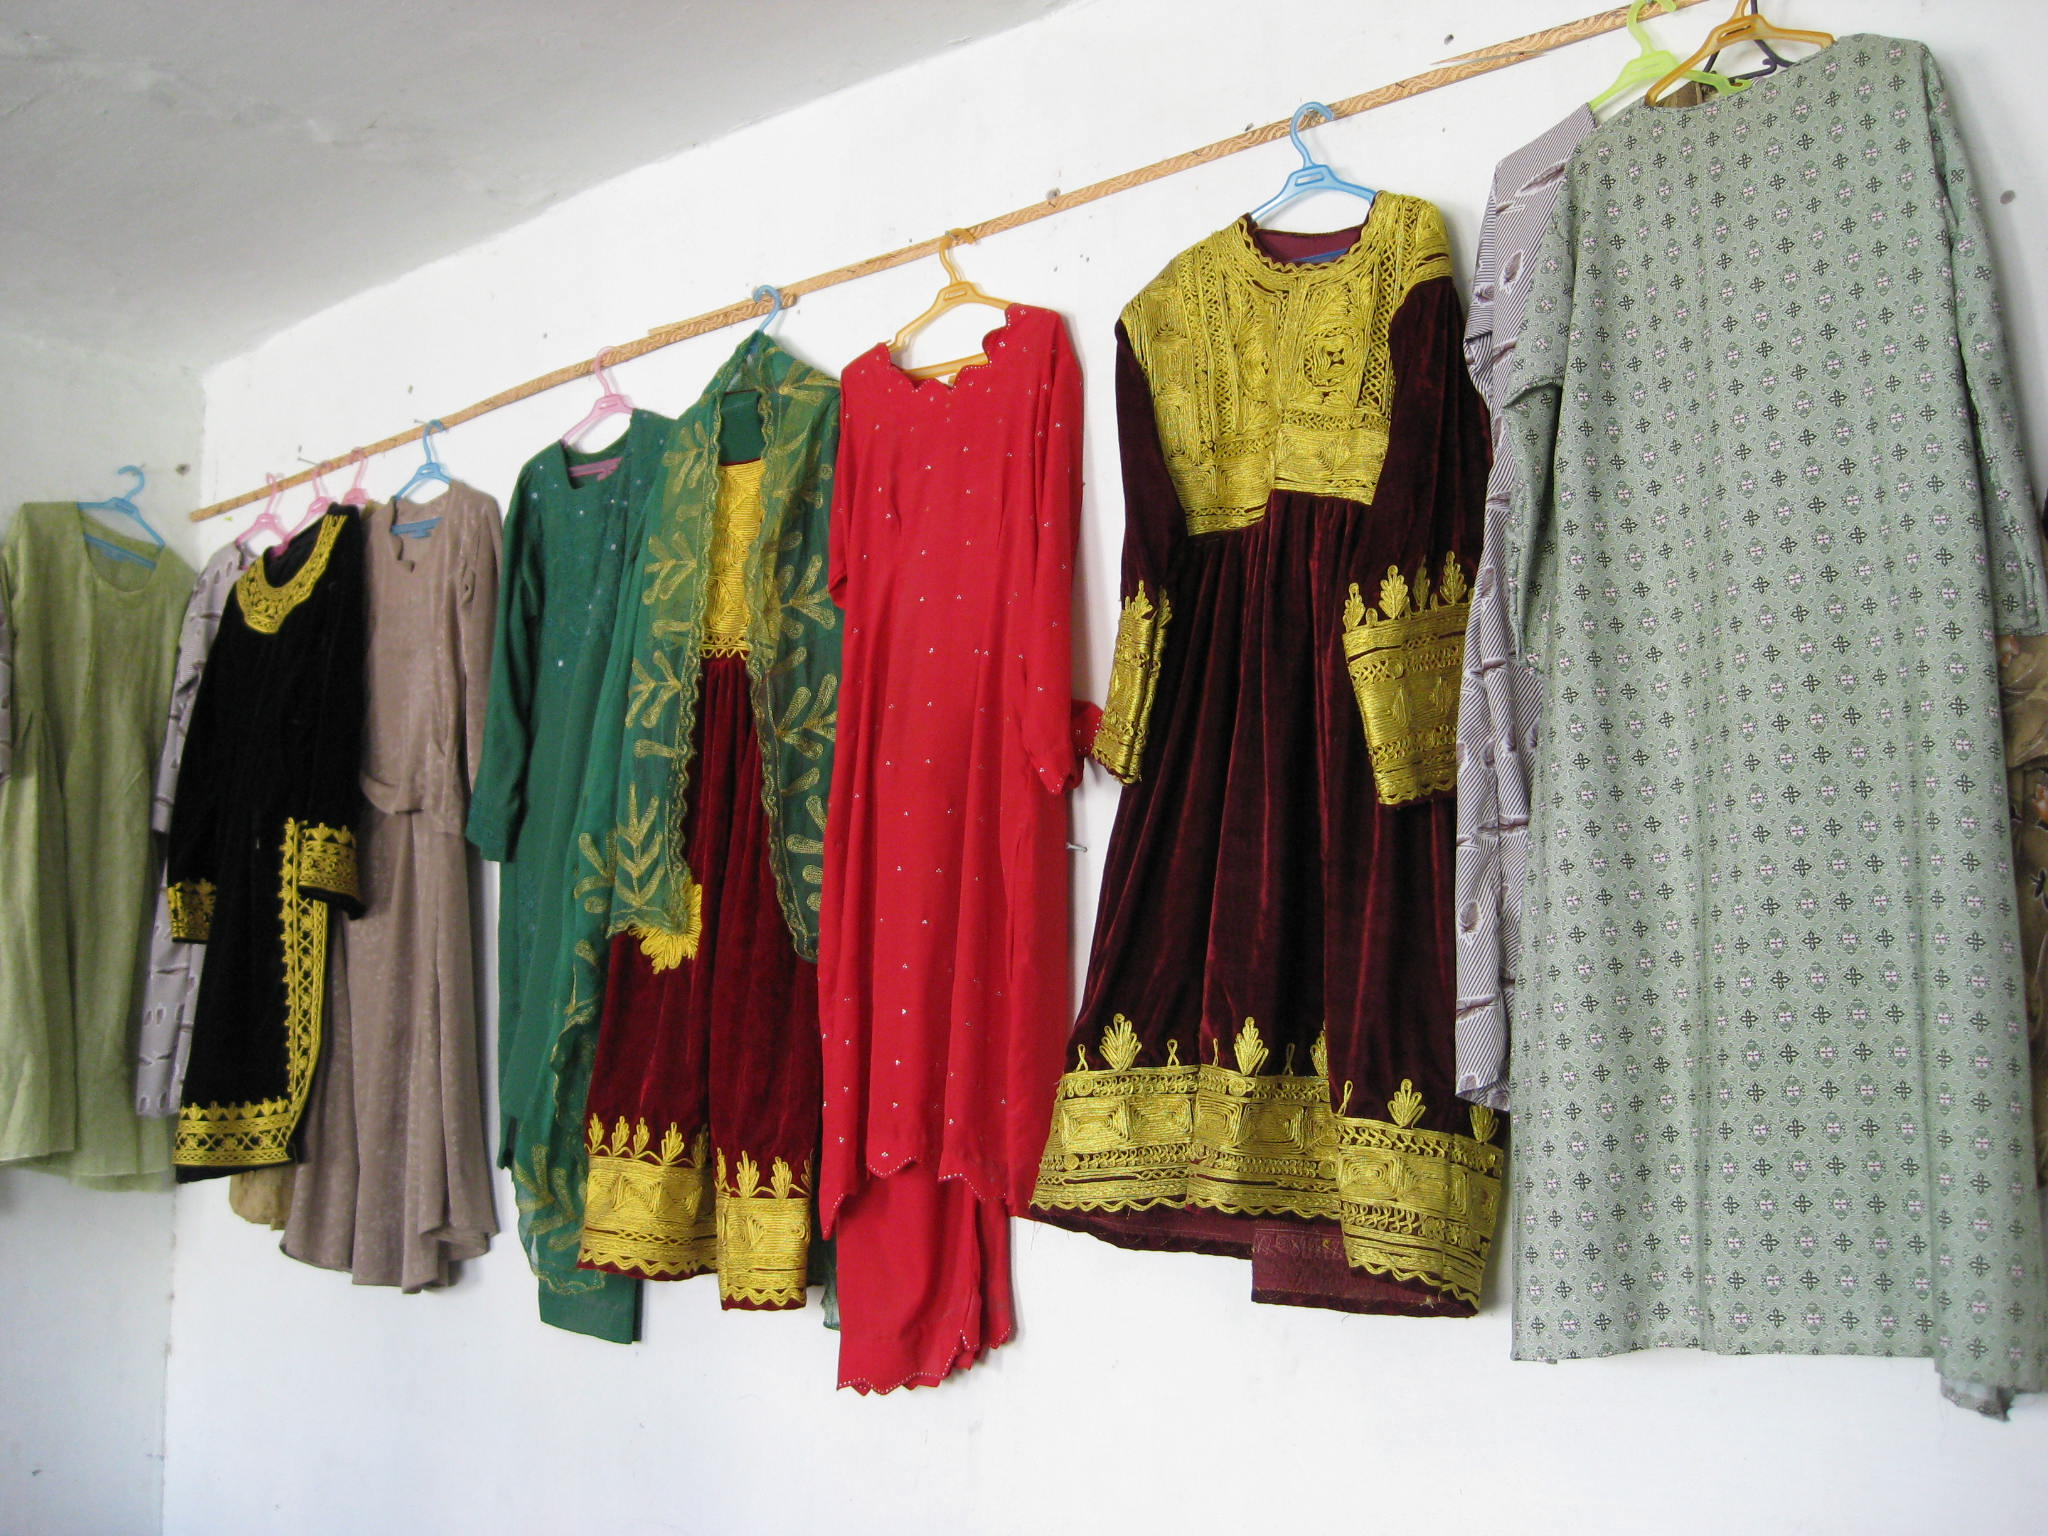 Afghanistan clothing for women